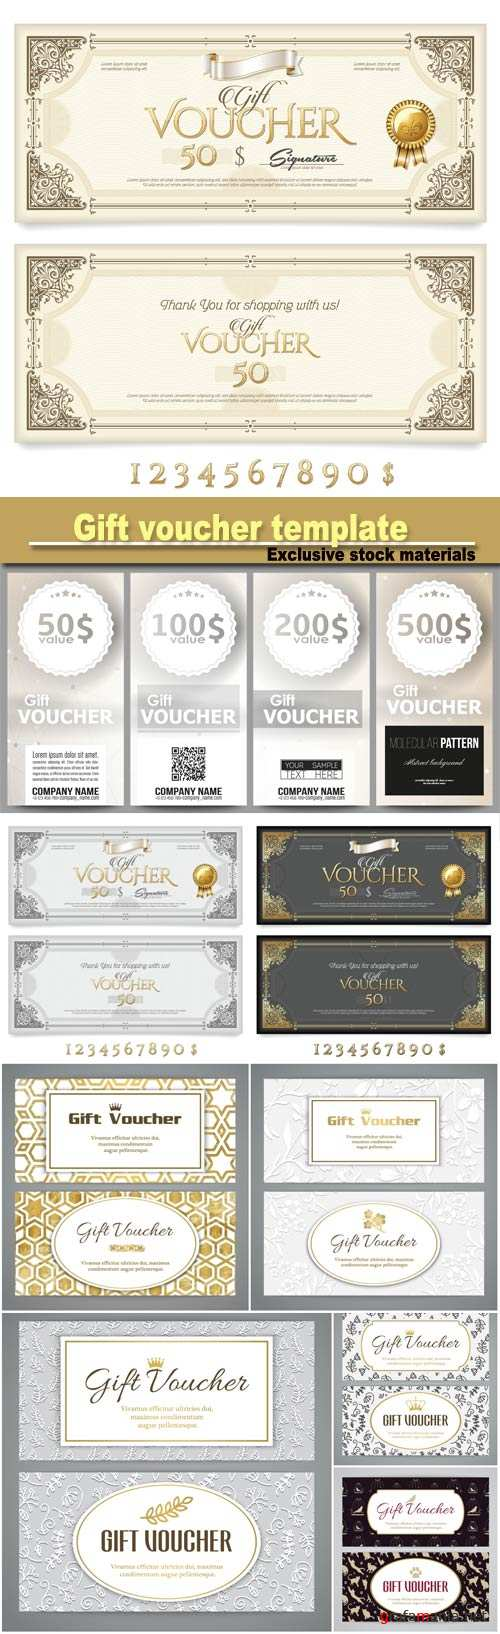 Gift voucher template with doodle pattern